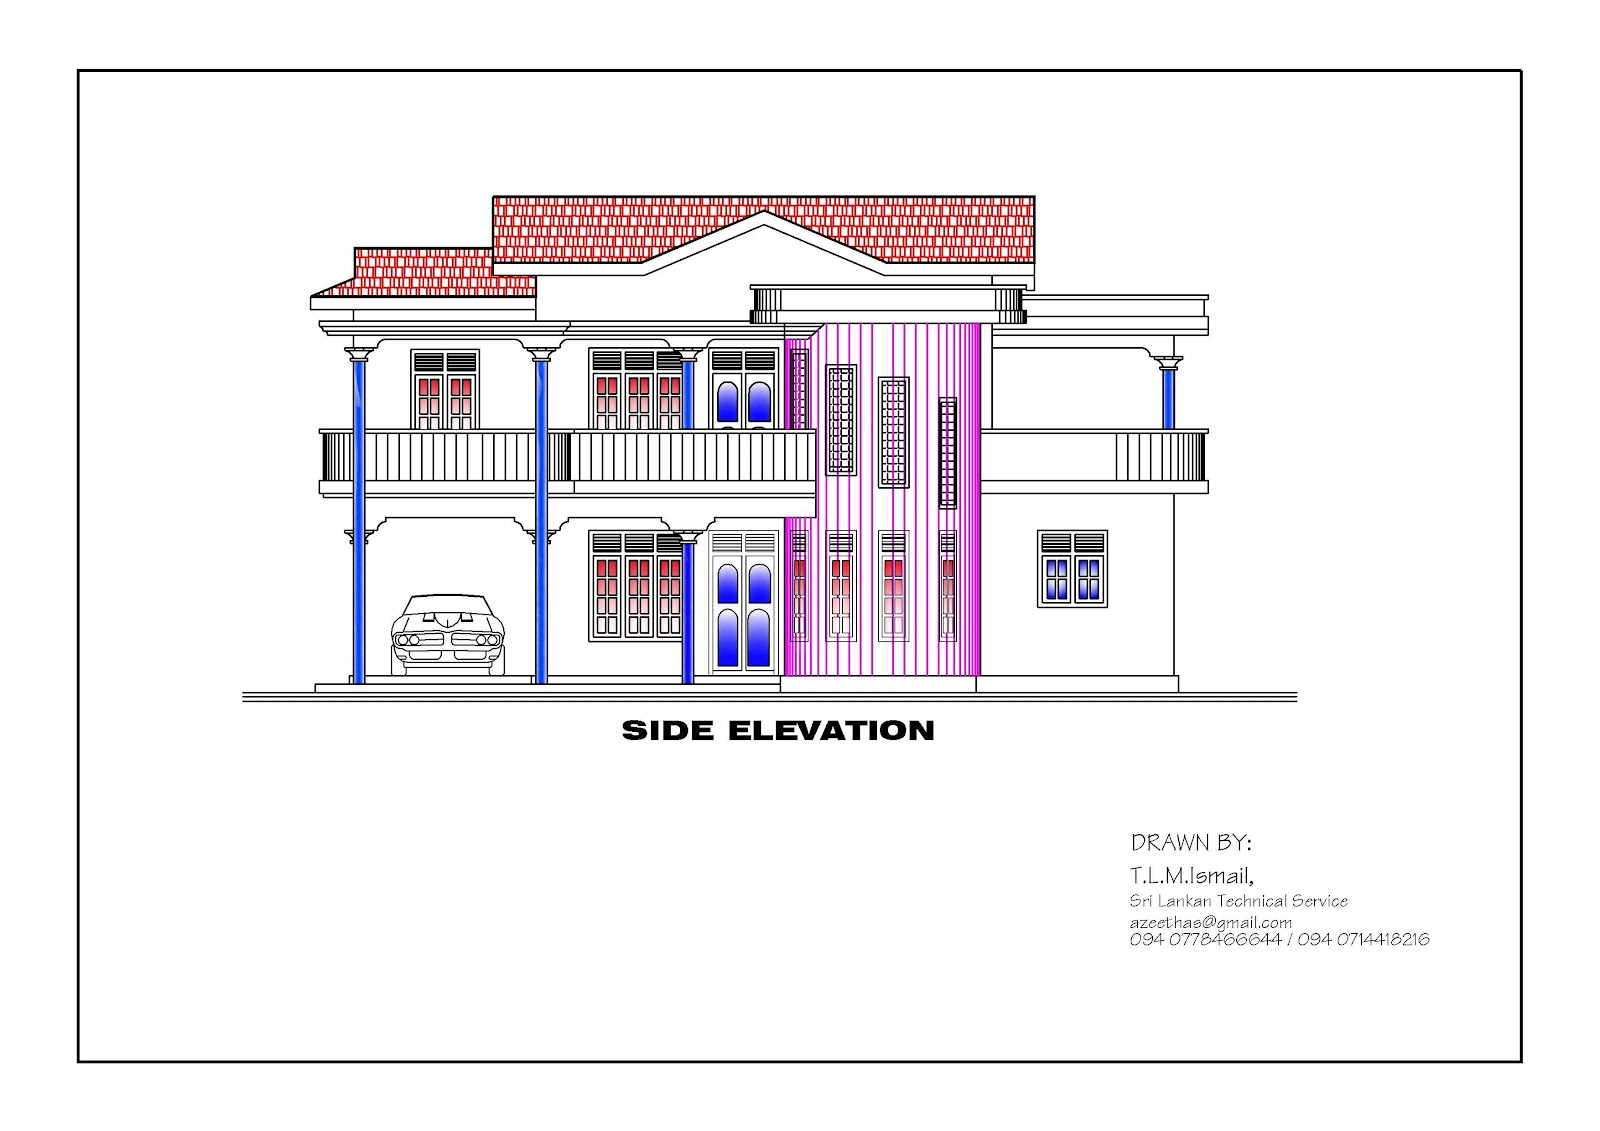 Free building drawing at getdrawings free for personal use 1600x1131 free home design plans malvernweather Image collections